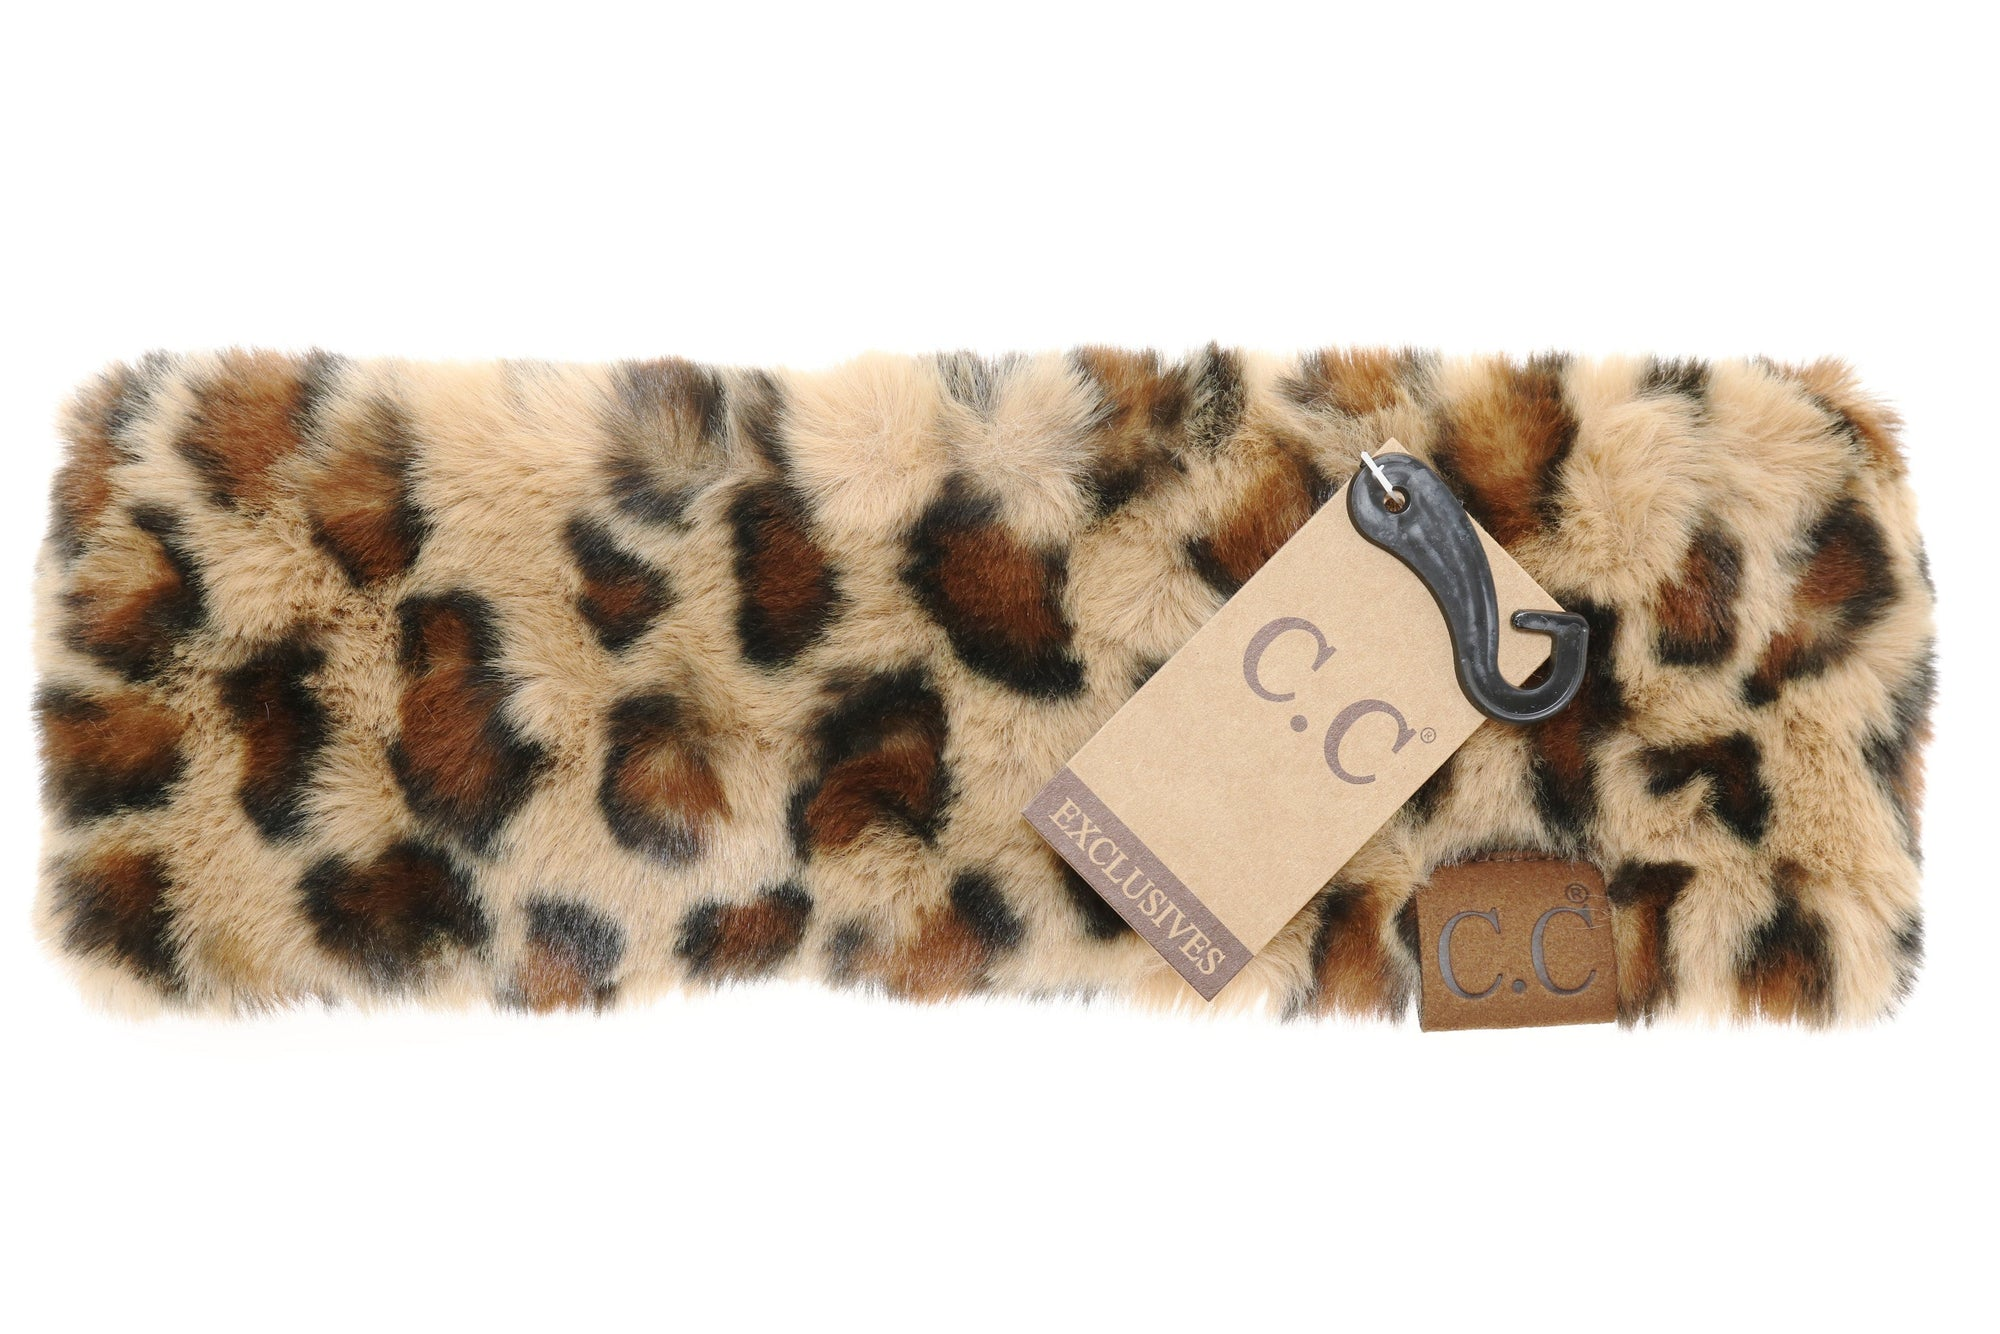 C.C. Leopard Faux Fur Headwrap #HW716 (PC)